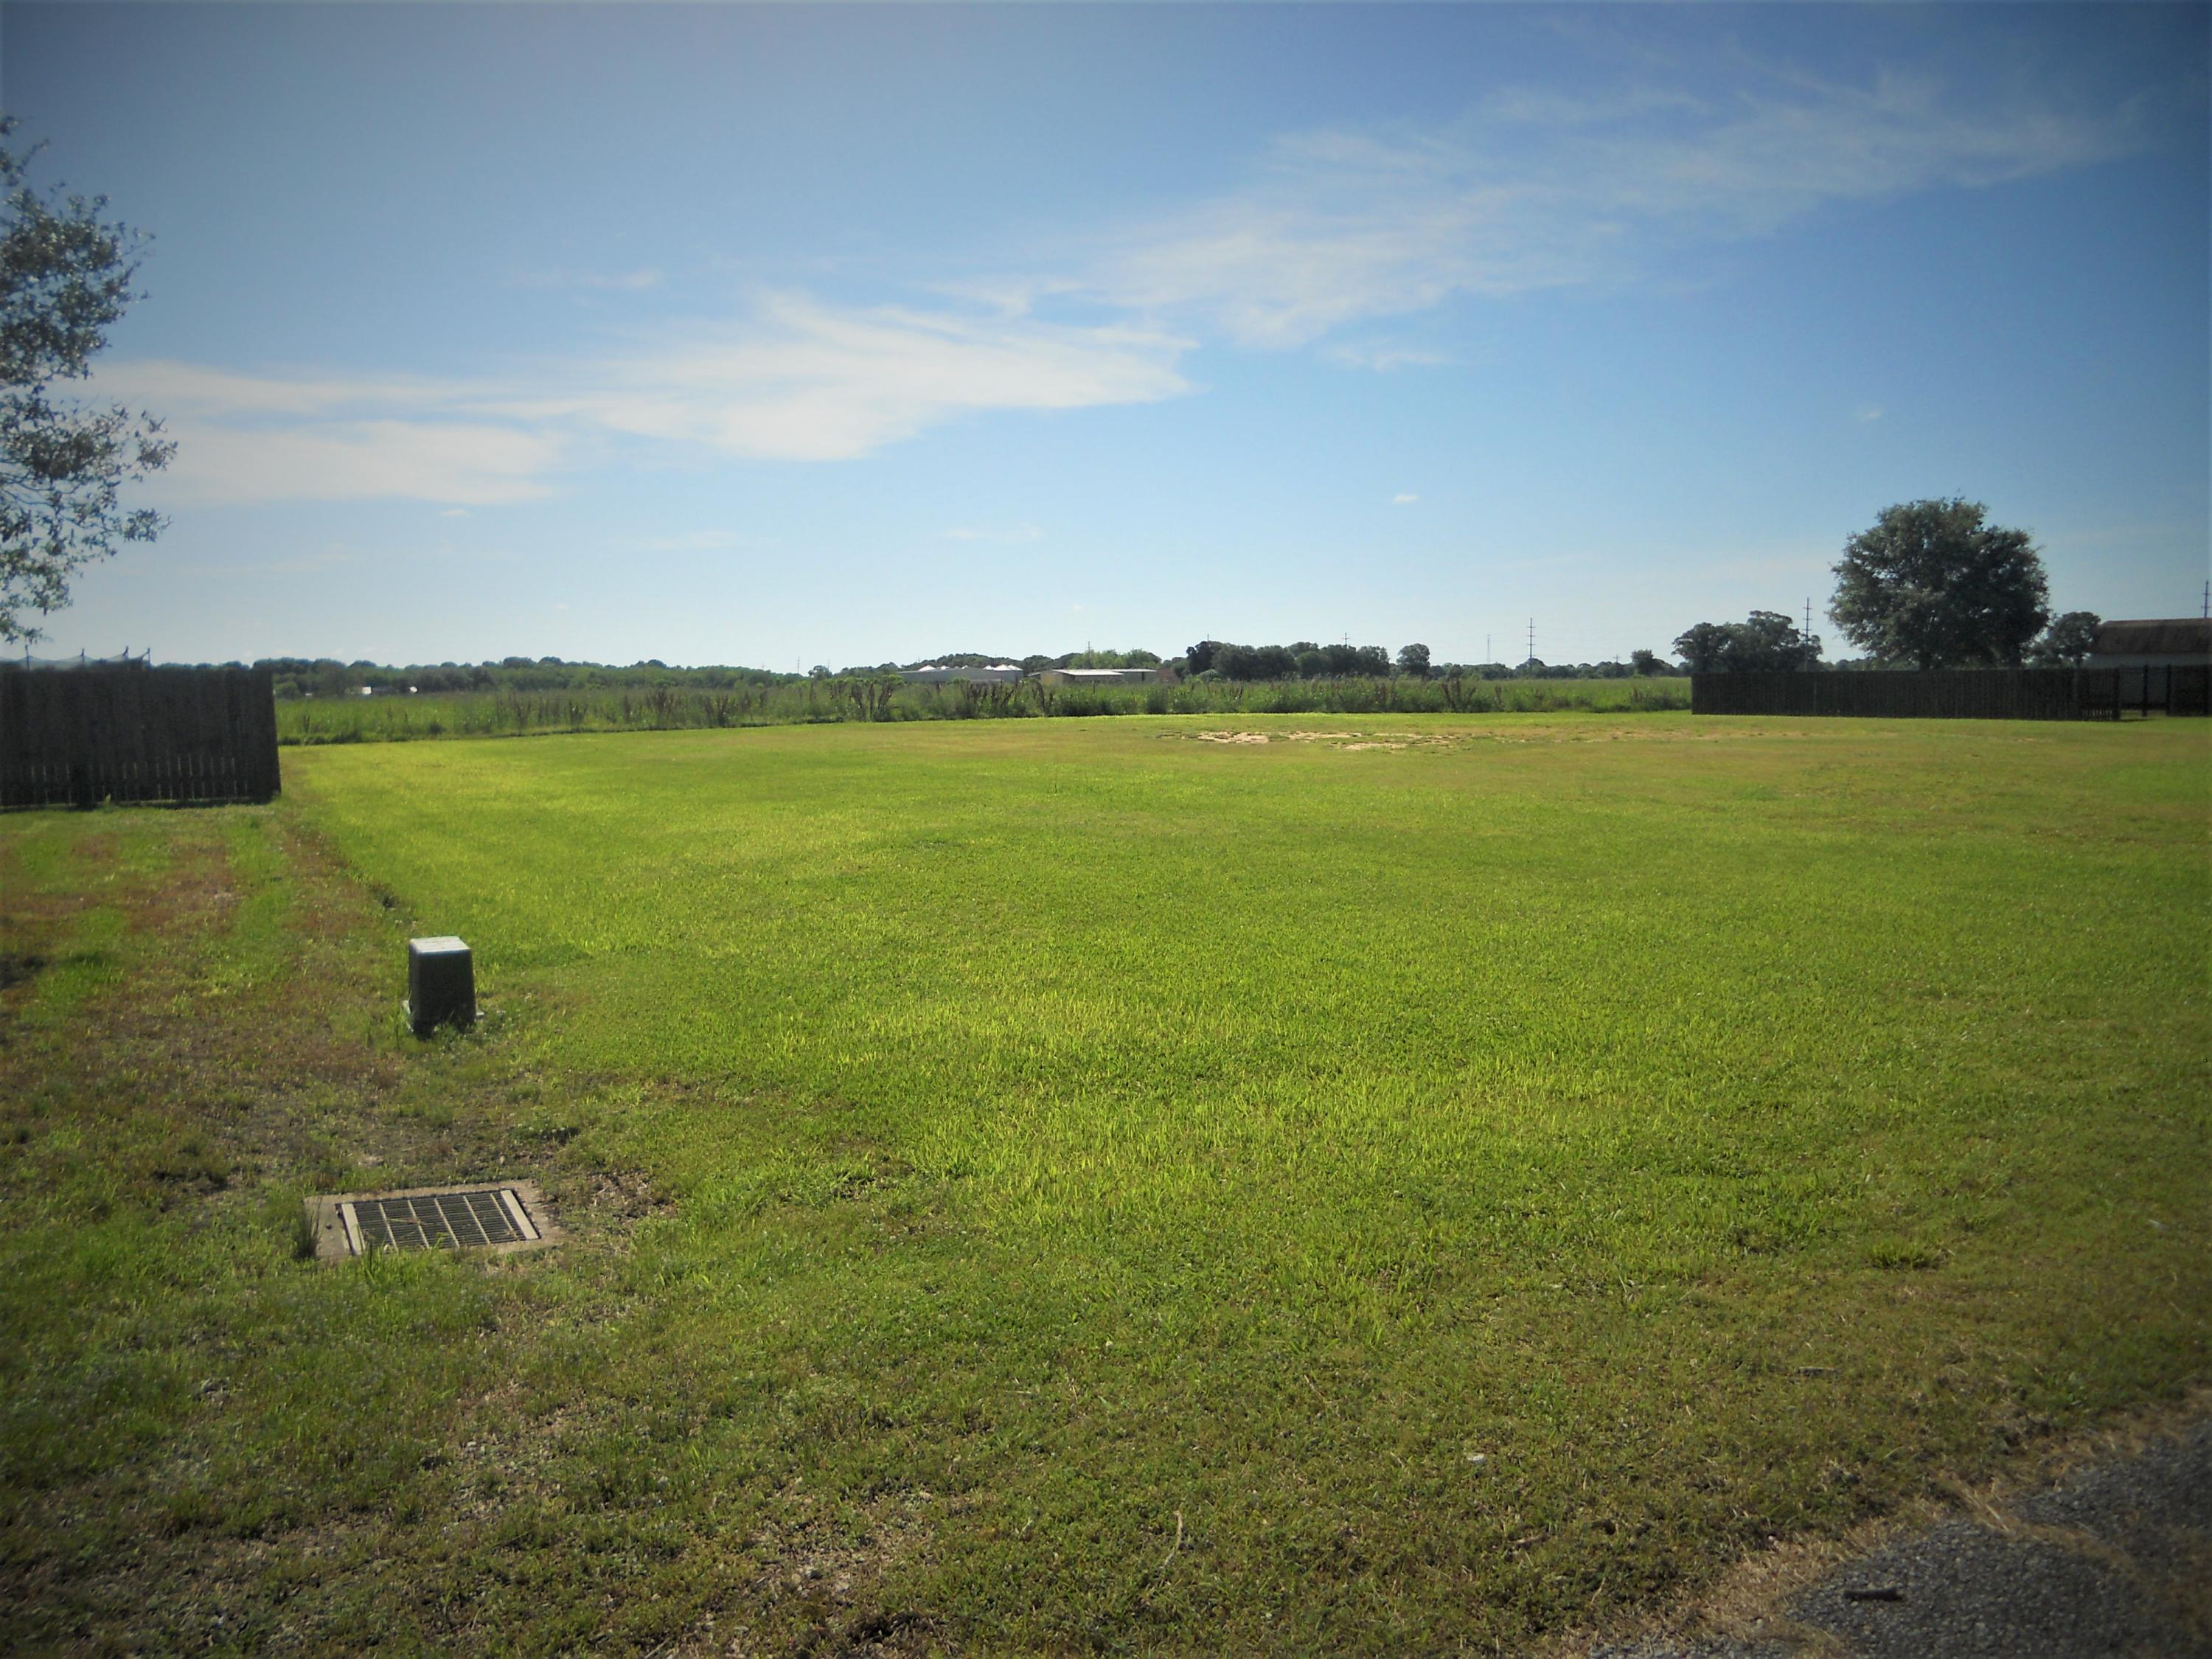 Roanoke land for sale,  Grand Prairie Ln, Roanoke LA - $40,000